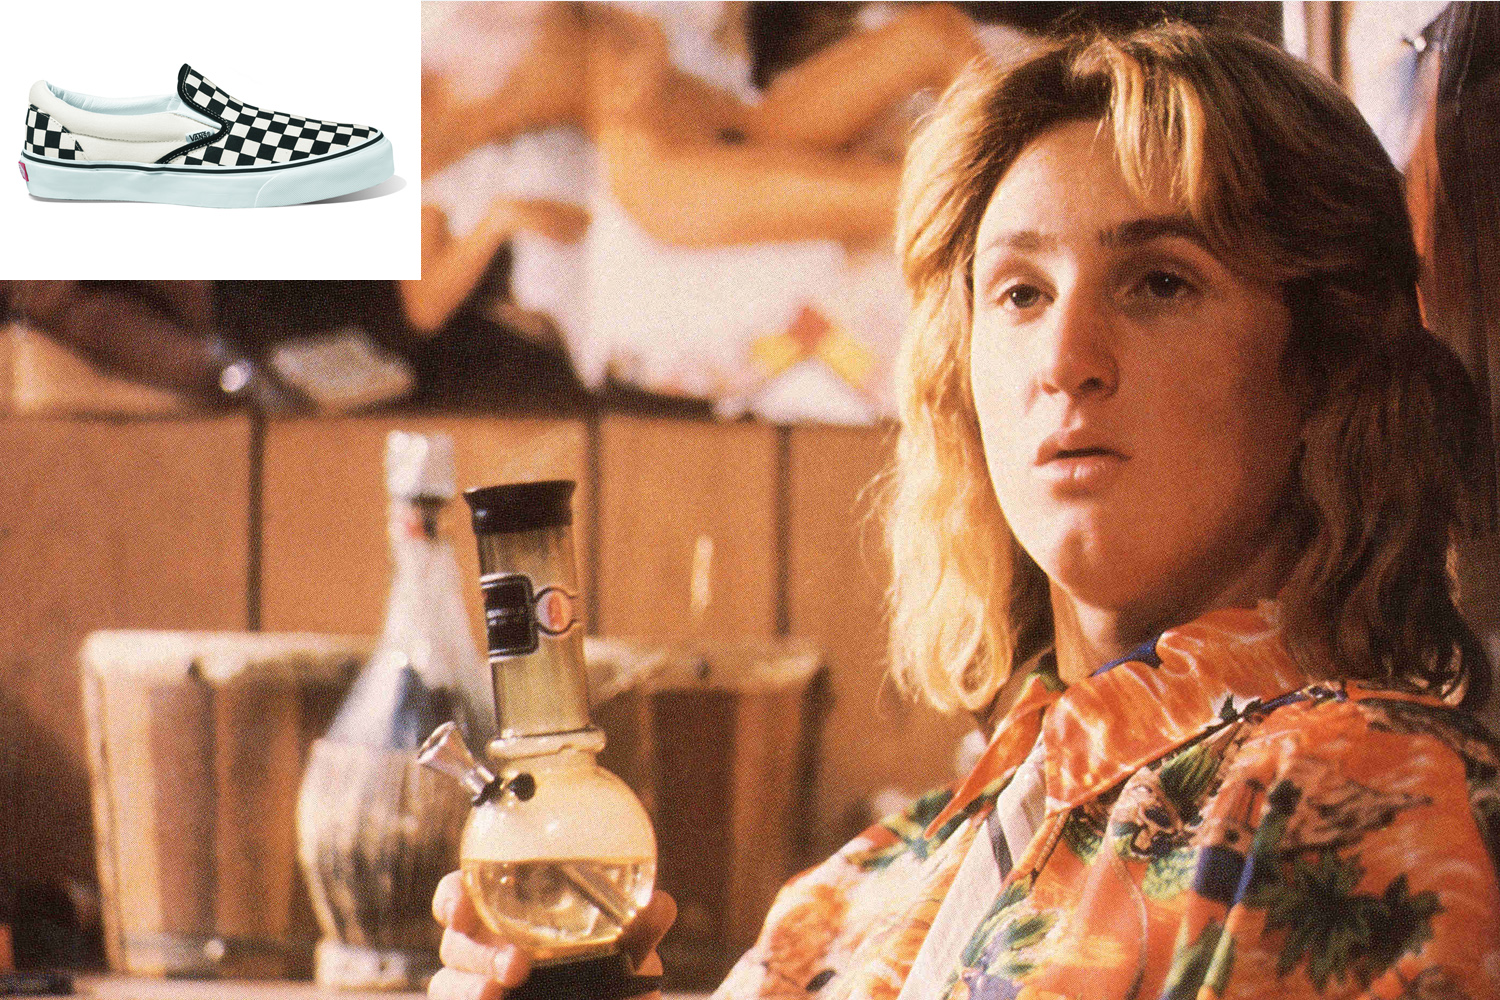 How Spicoli sparked a style revolution